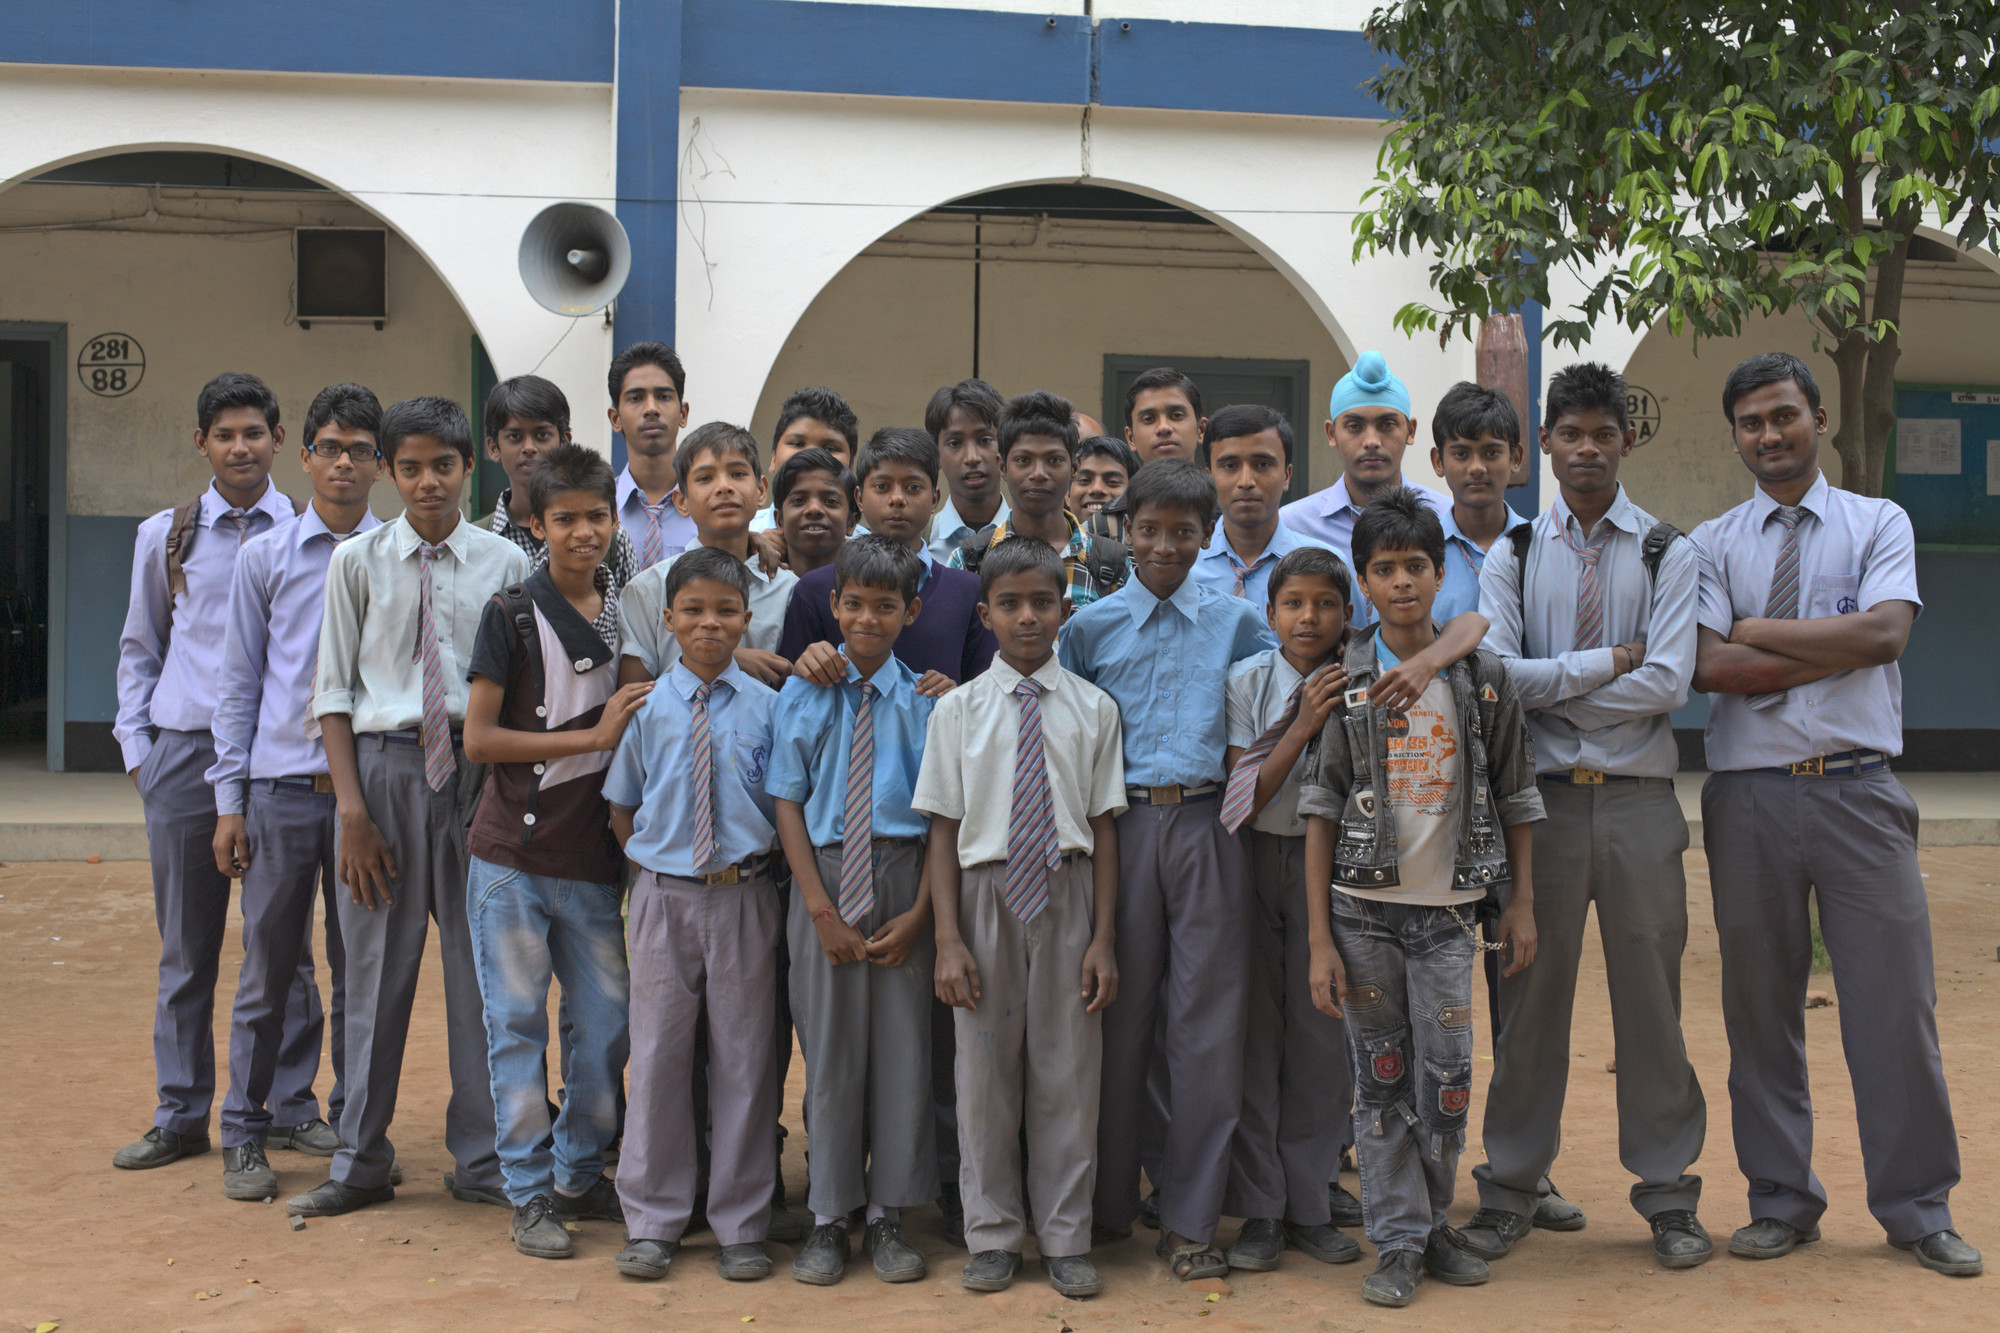 boys at St. Joseph's High School